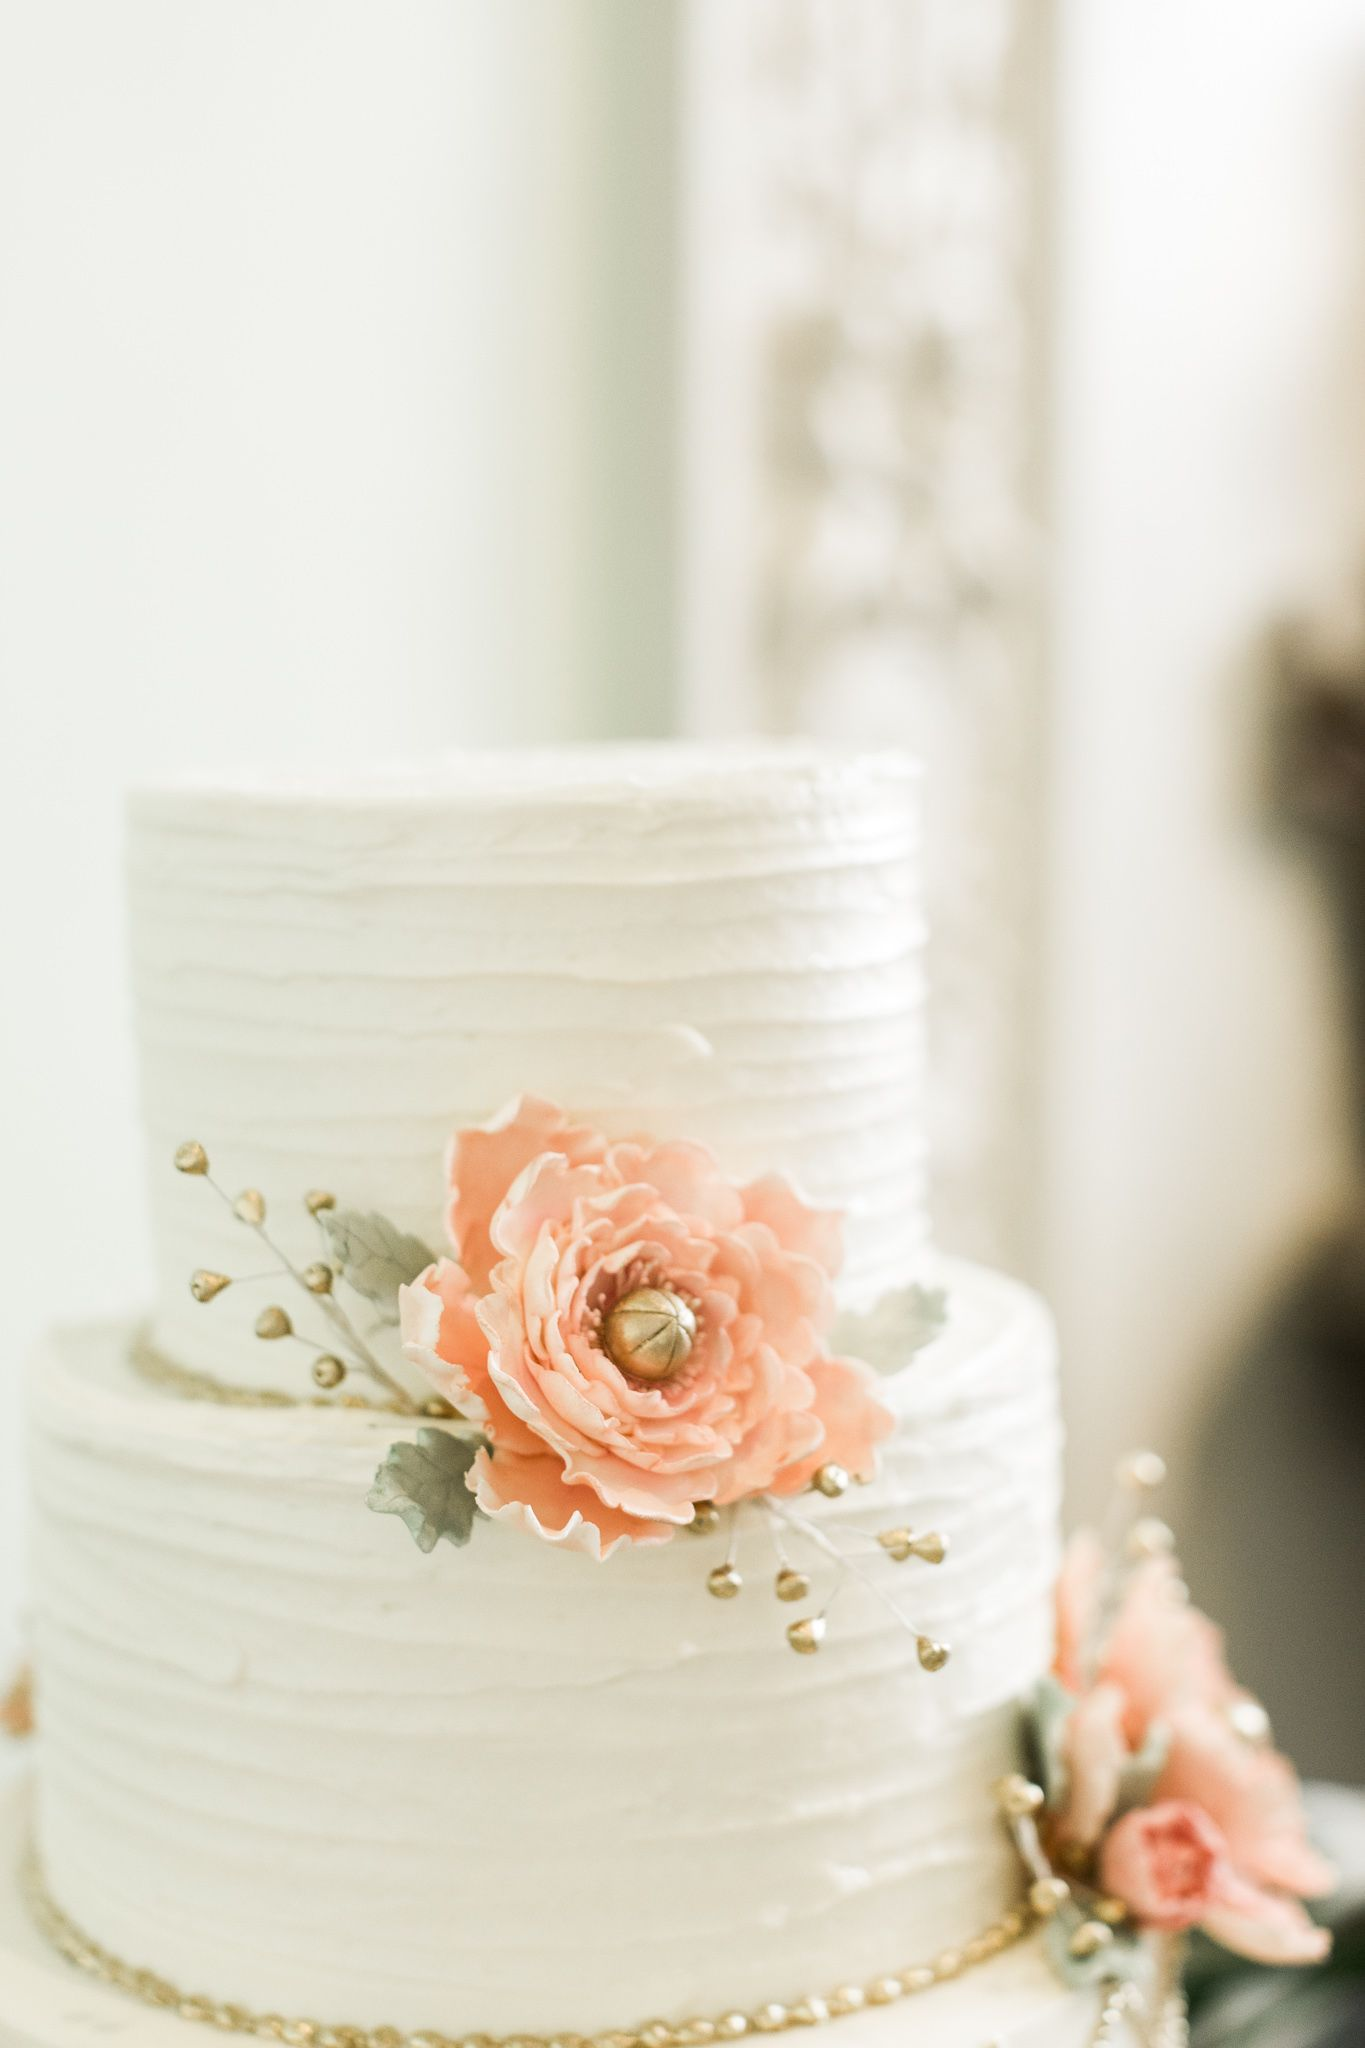 The simple white-tier cake was decorated with fresh peach garden ...